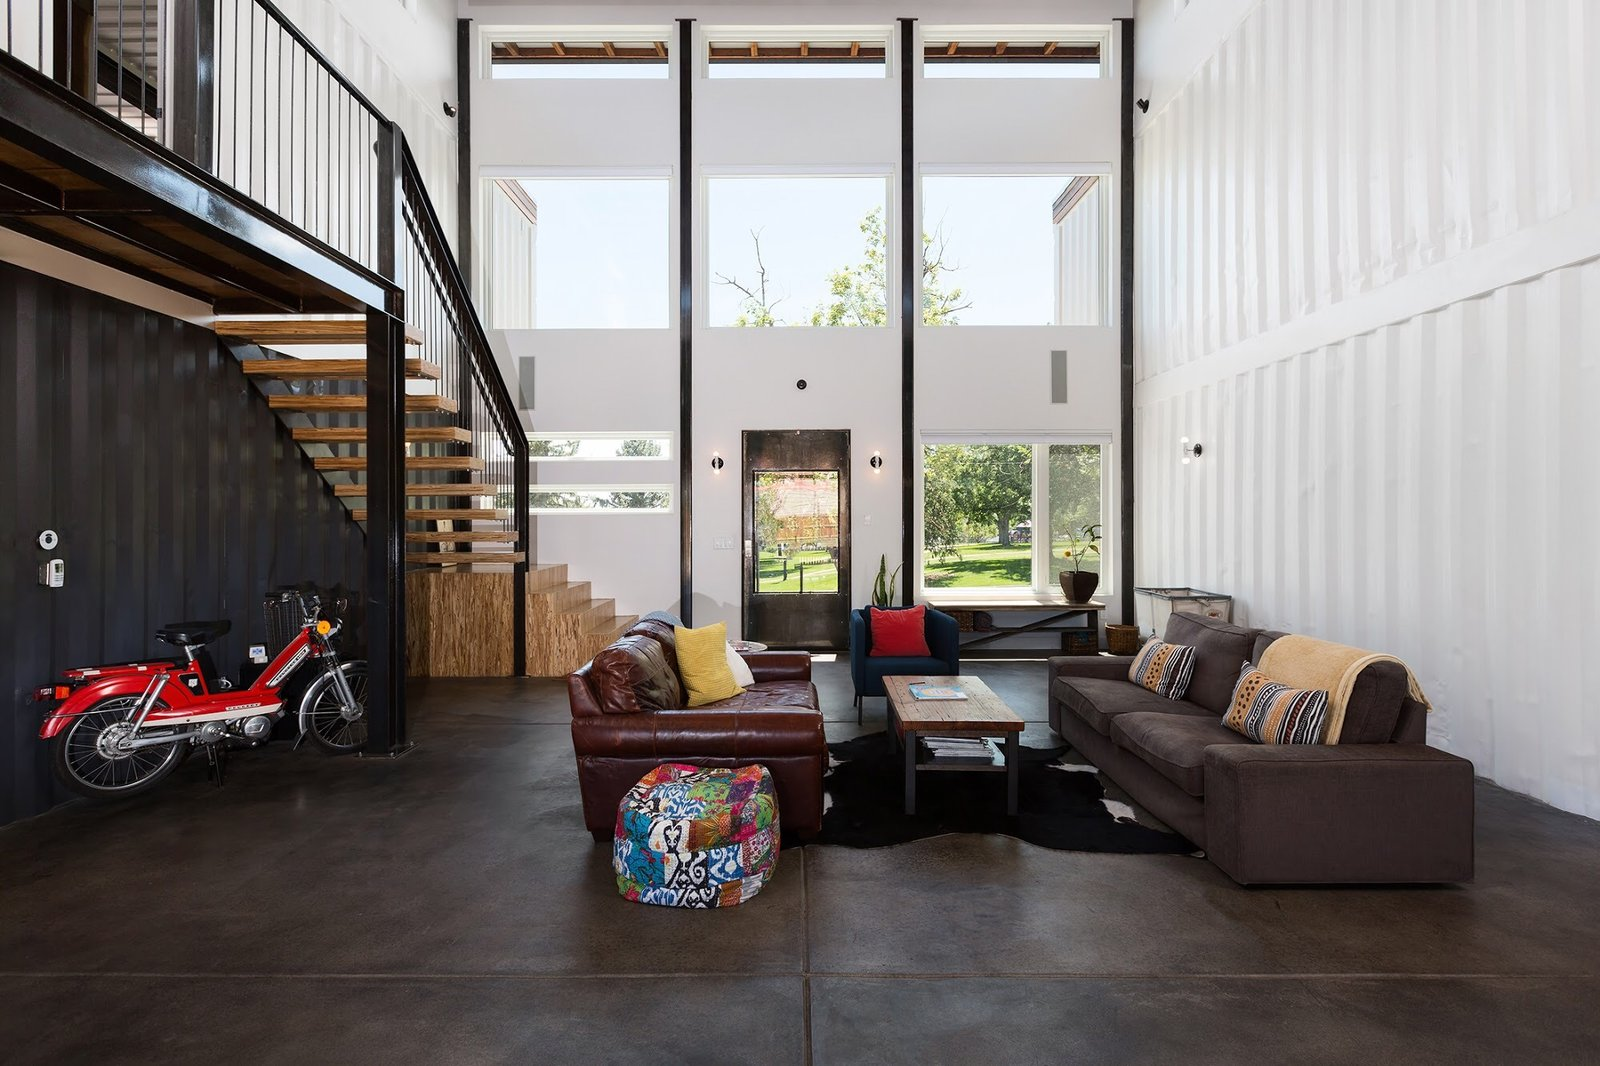 Chris Boylen Photography Tagged: Living Room, Bench, Chair, Sofa, and End Tables.  The Container house by regan foster